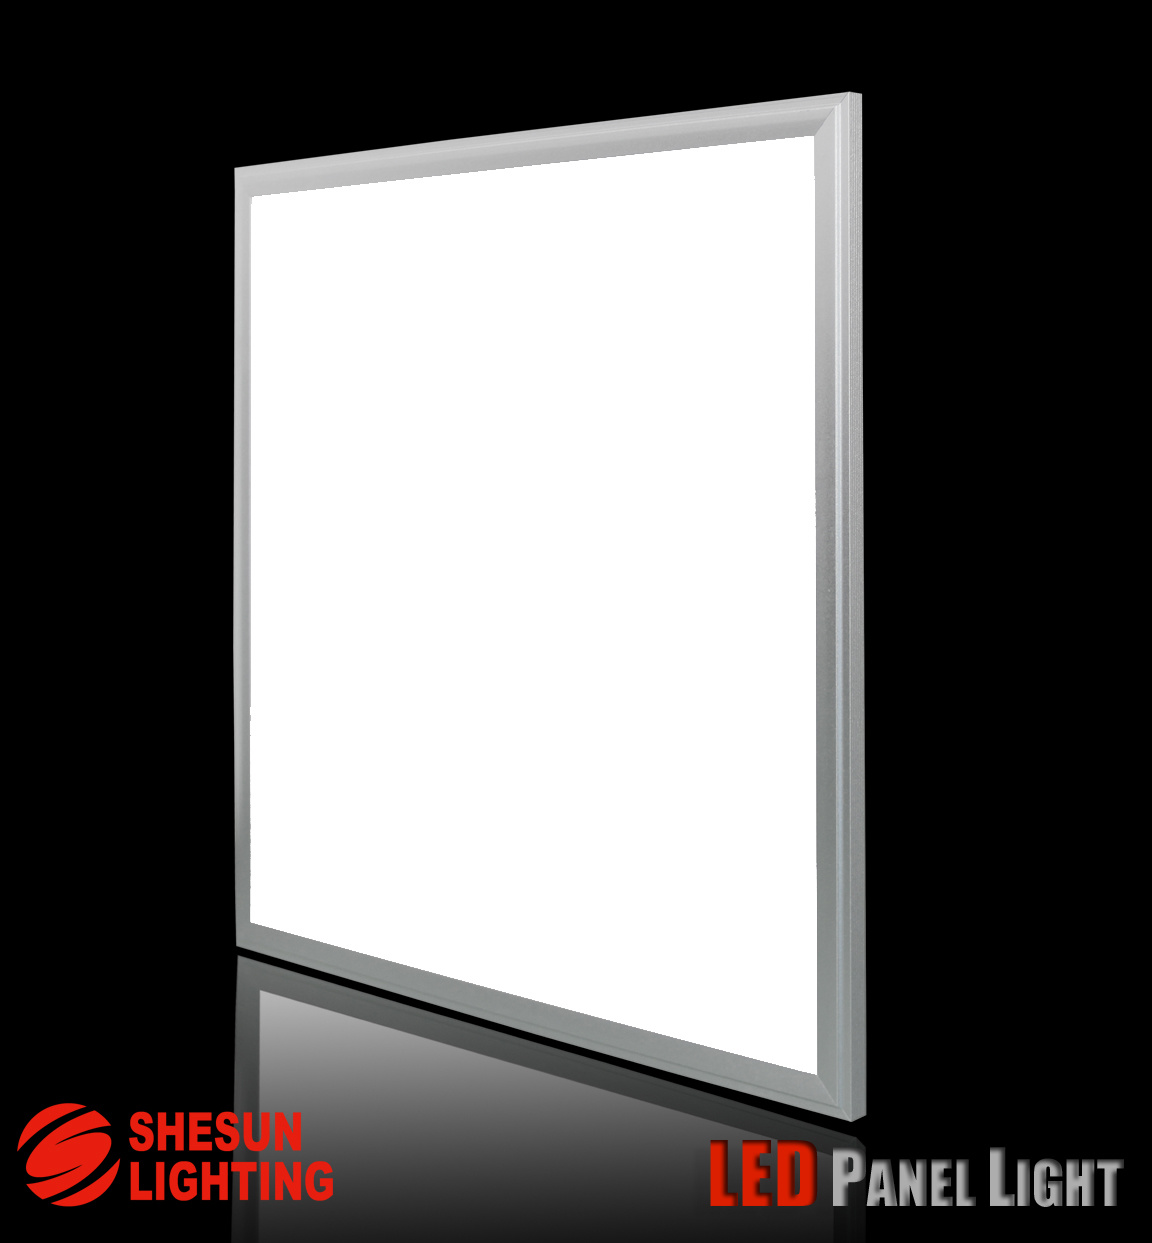 led 600x600 ceiling panel light china led panel light led light panel. Black Bedroom Furniture Sets. Home Design Ideas